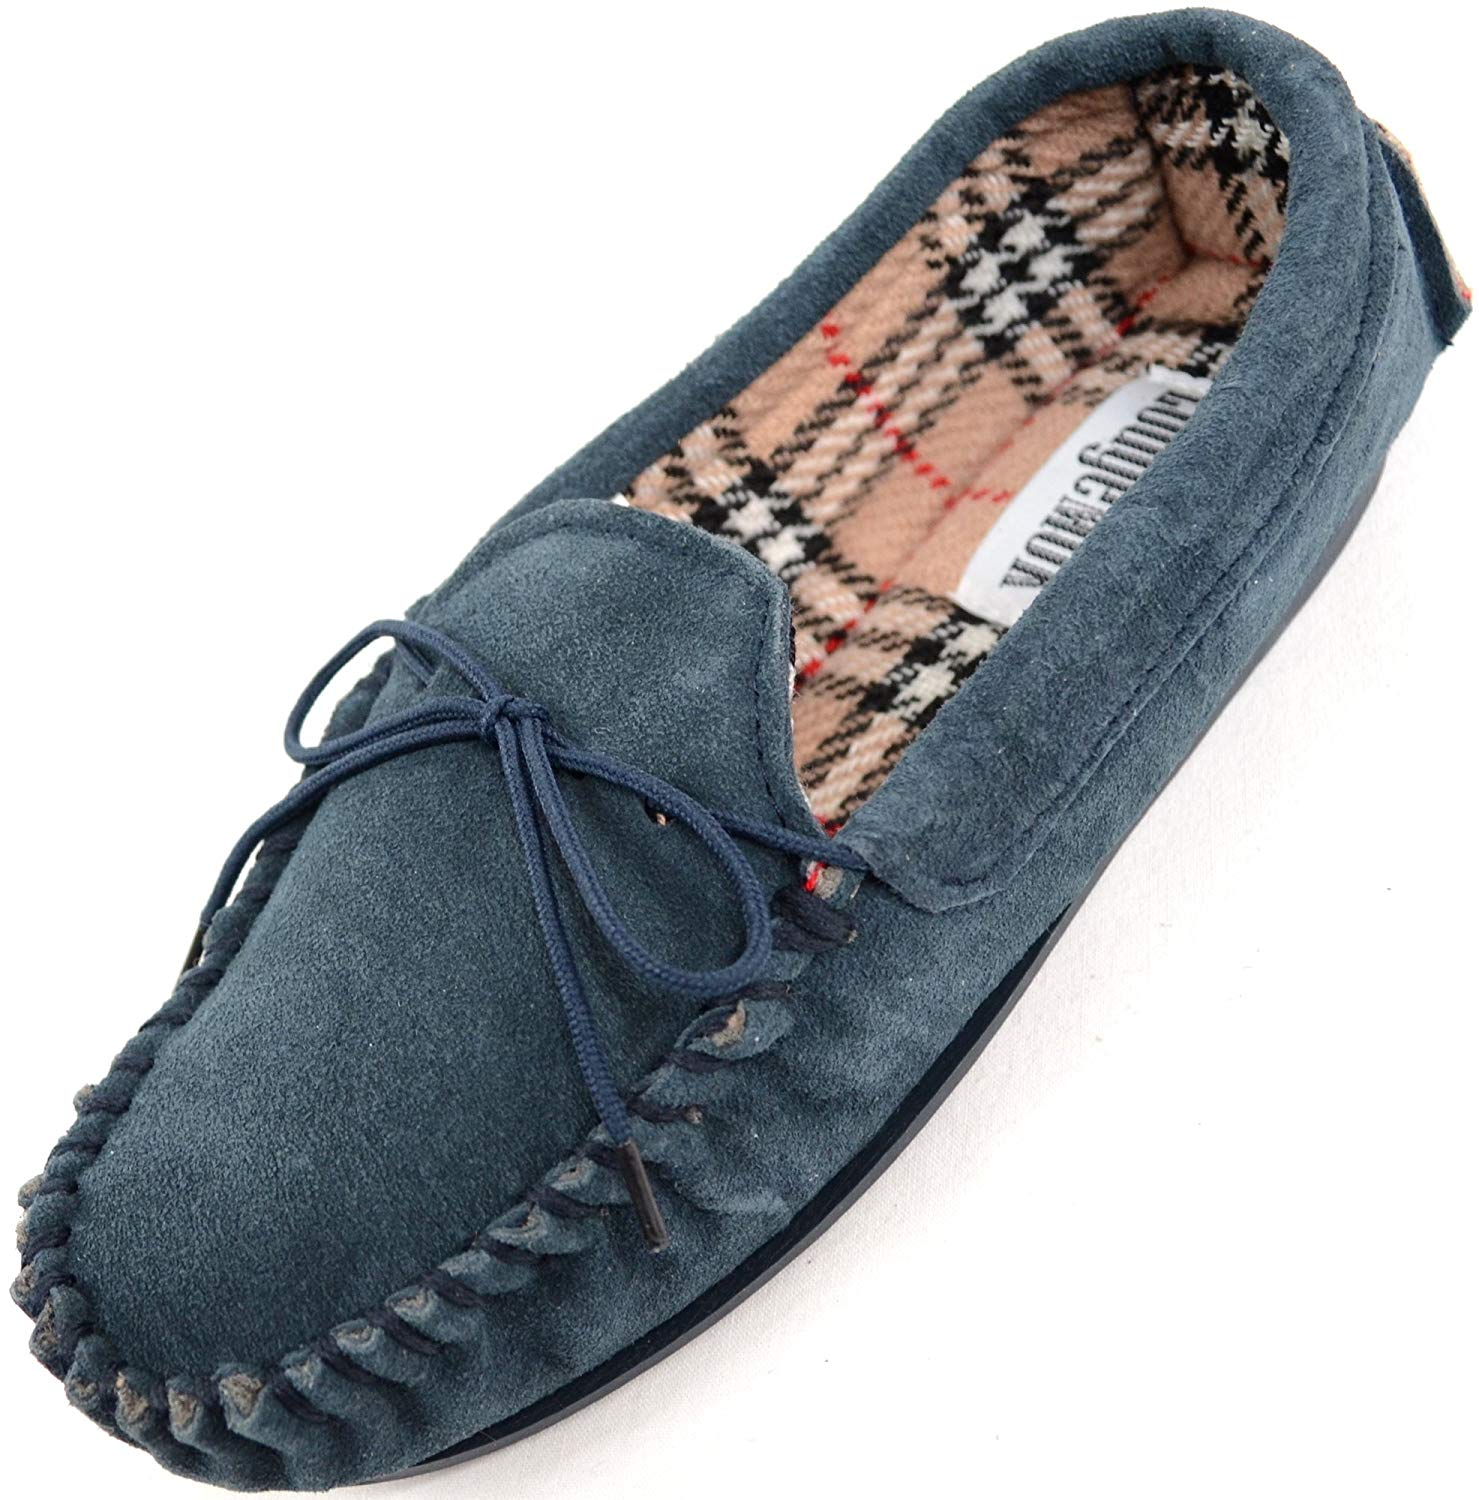 45cb3e5215d2a Cheap Ladies Leather Slippers, find Ladies Leather Slippers deals on ...